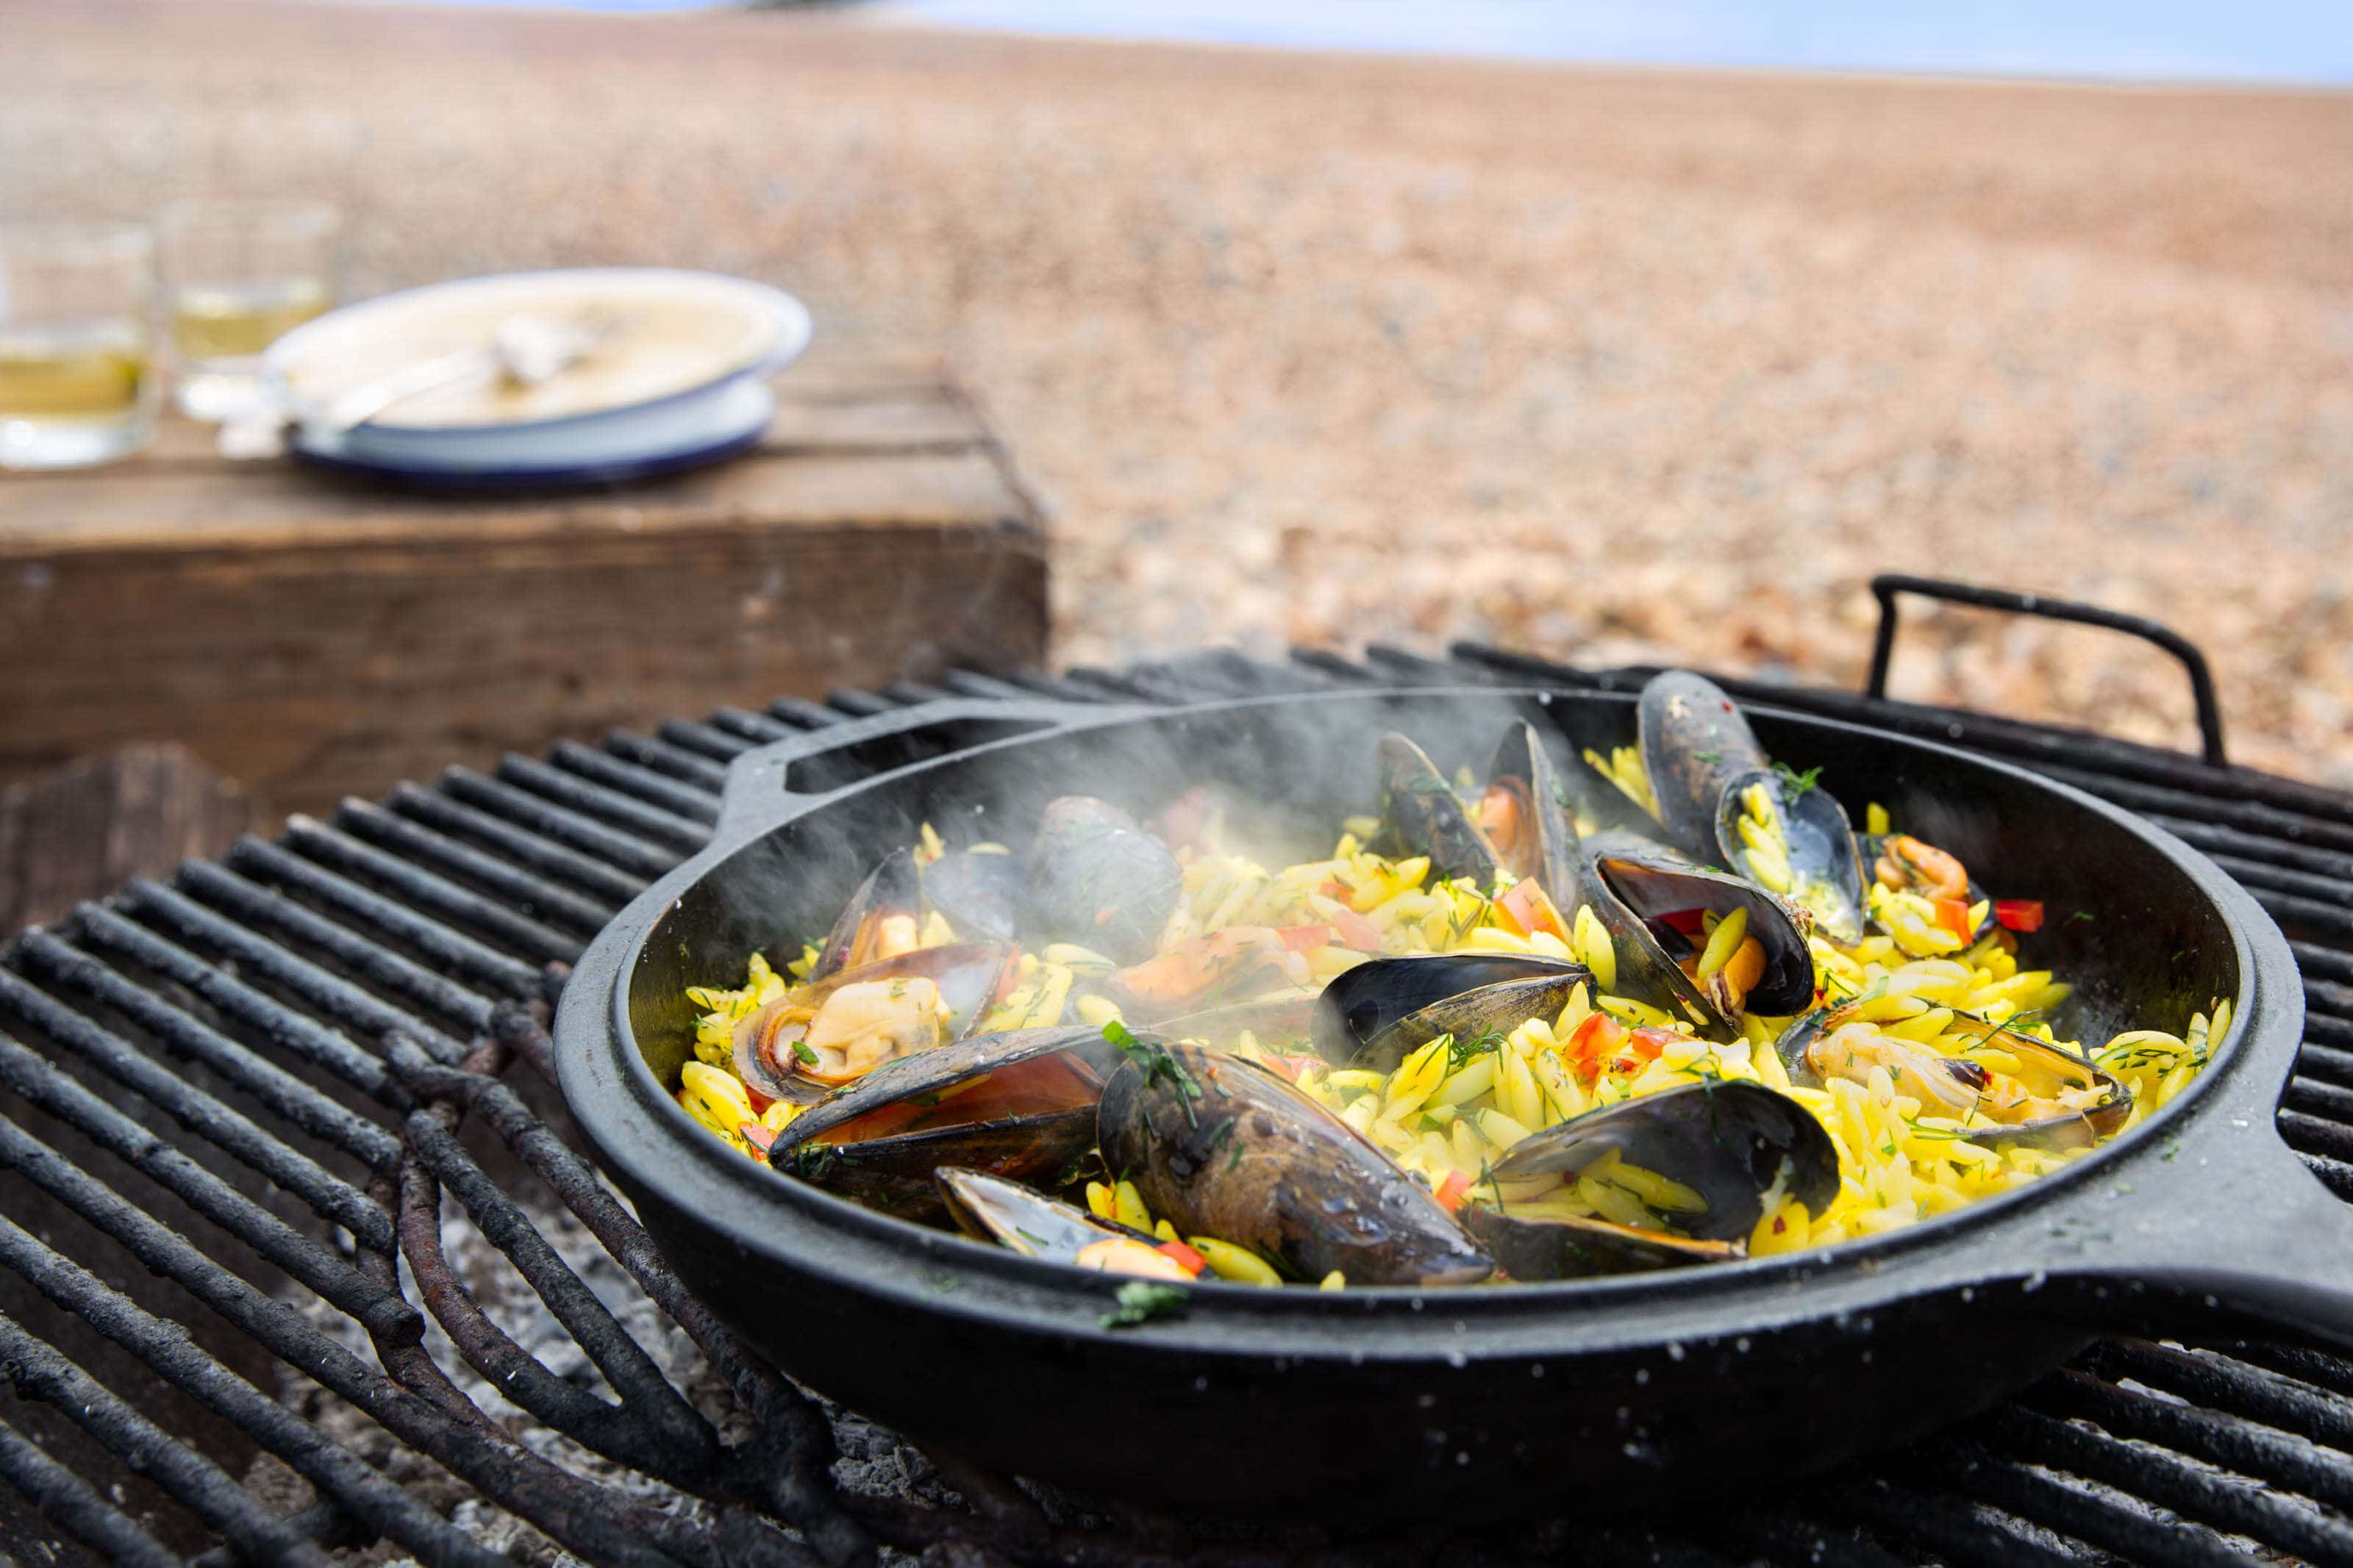 paella-cooking-on-the-bbq-on-the-beach